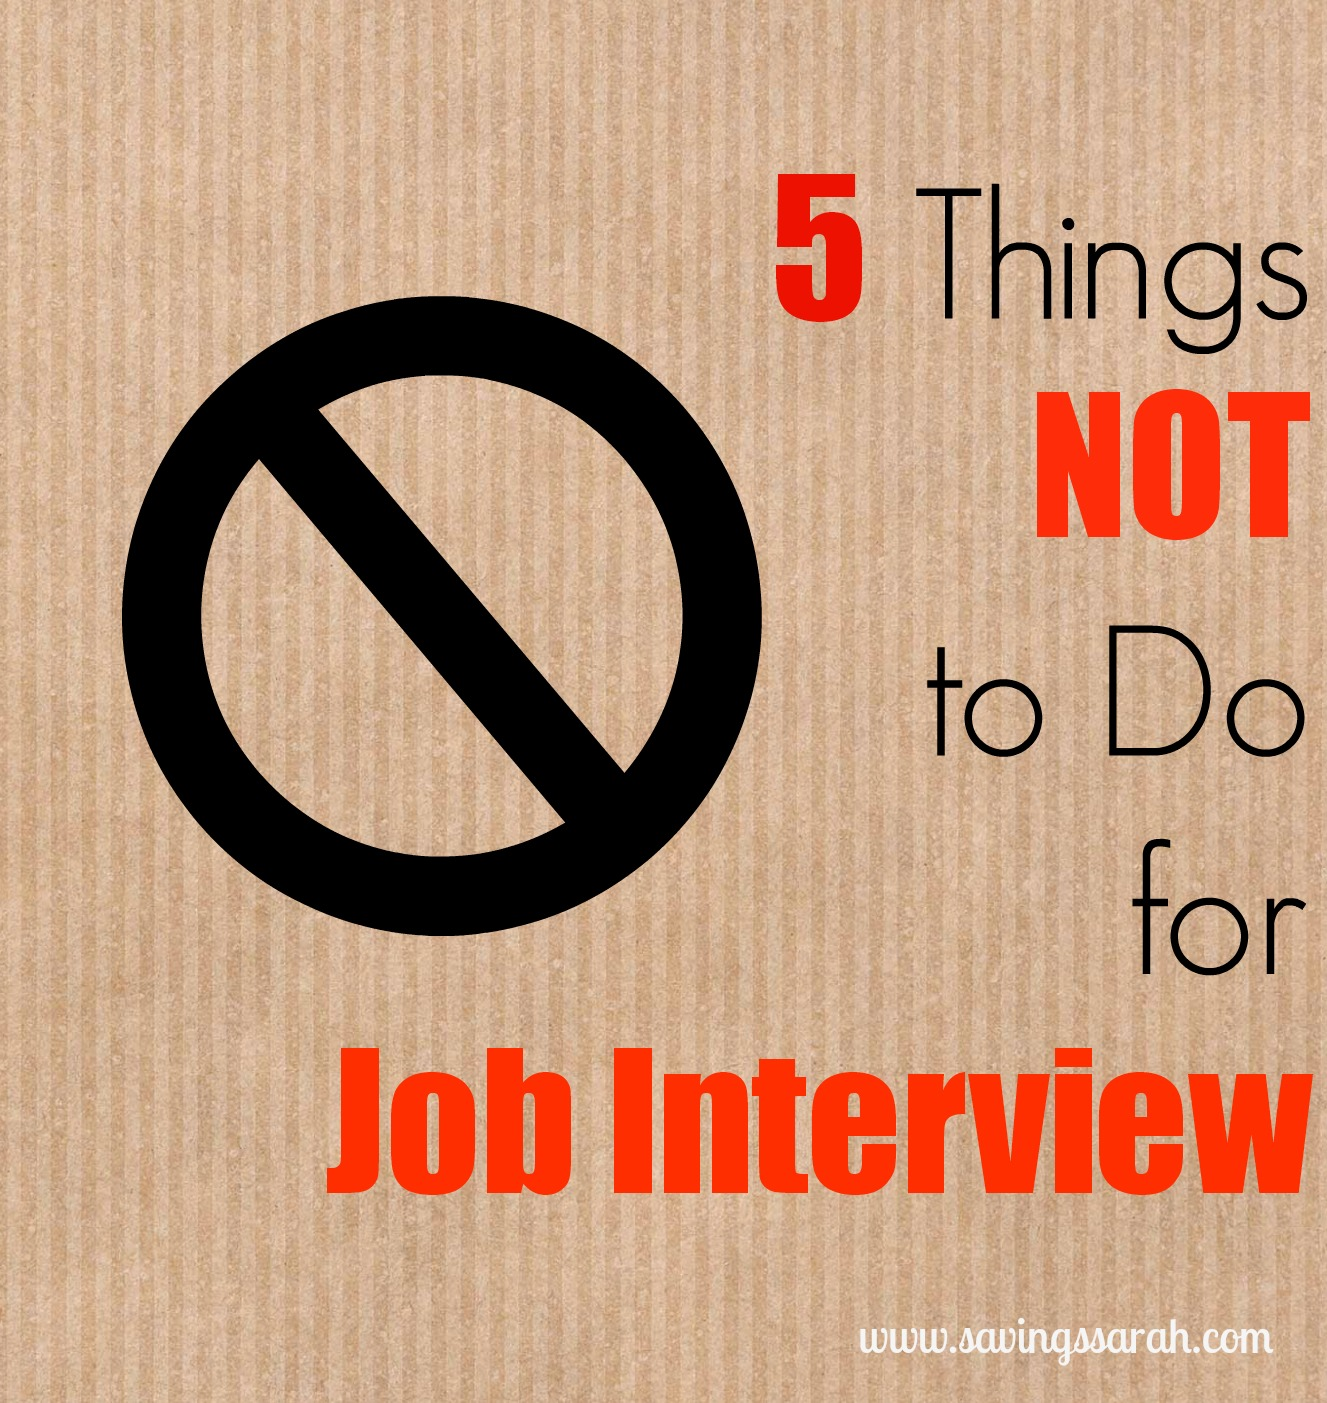 things not to do for job interview earning and saving sarah 5 things not to do for job interview